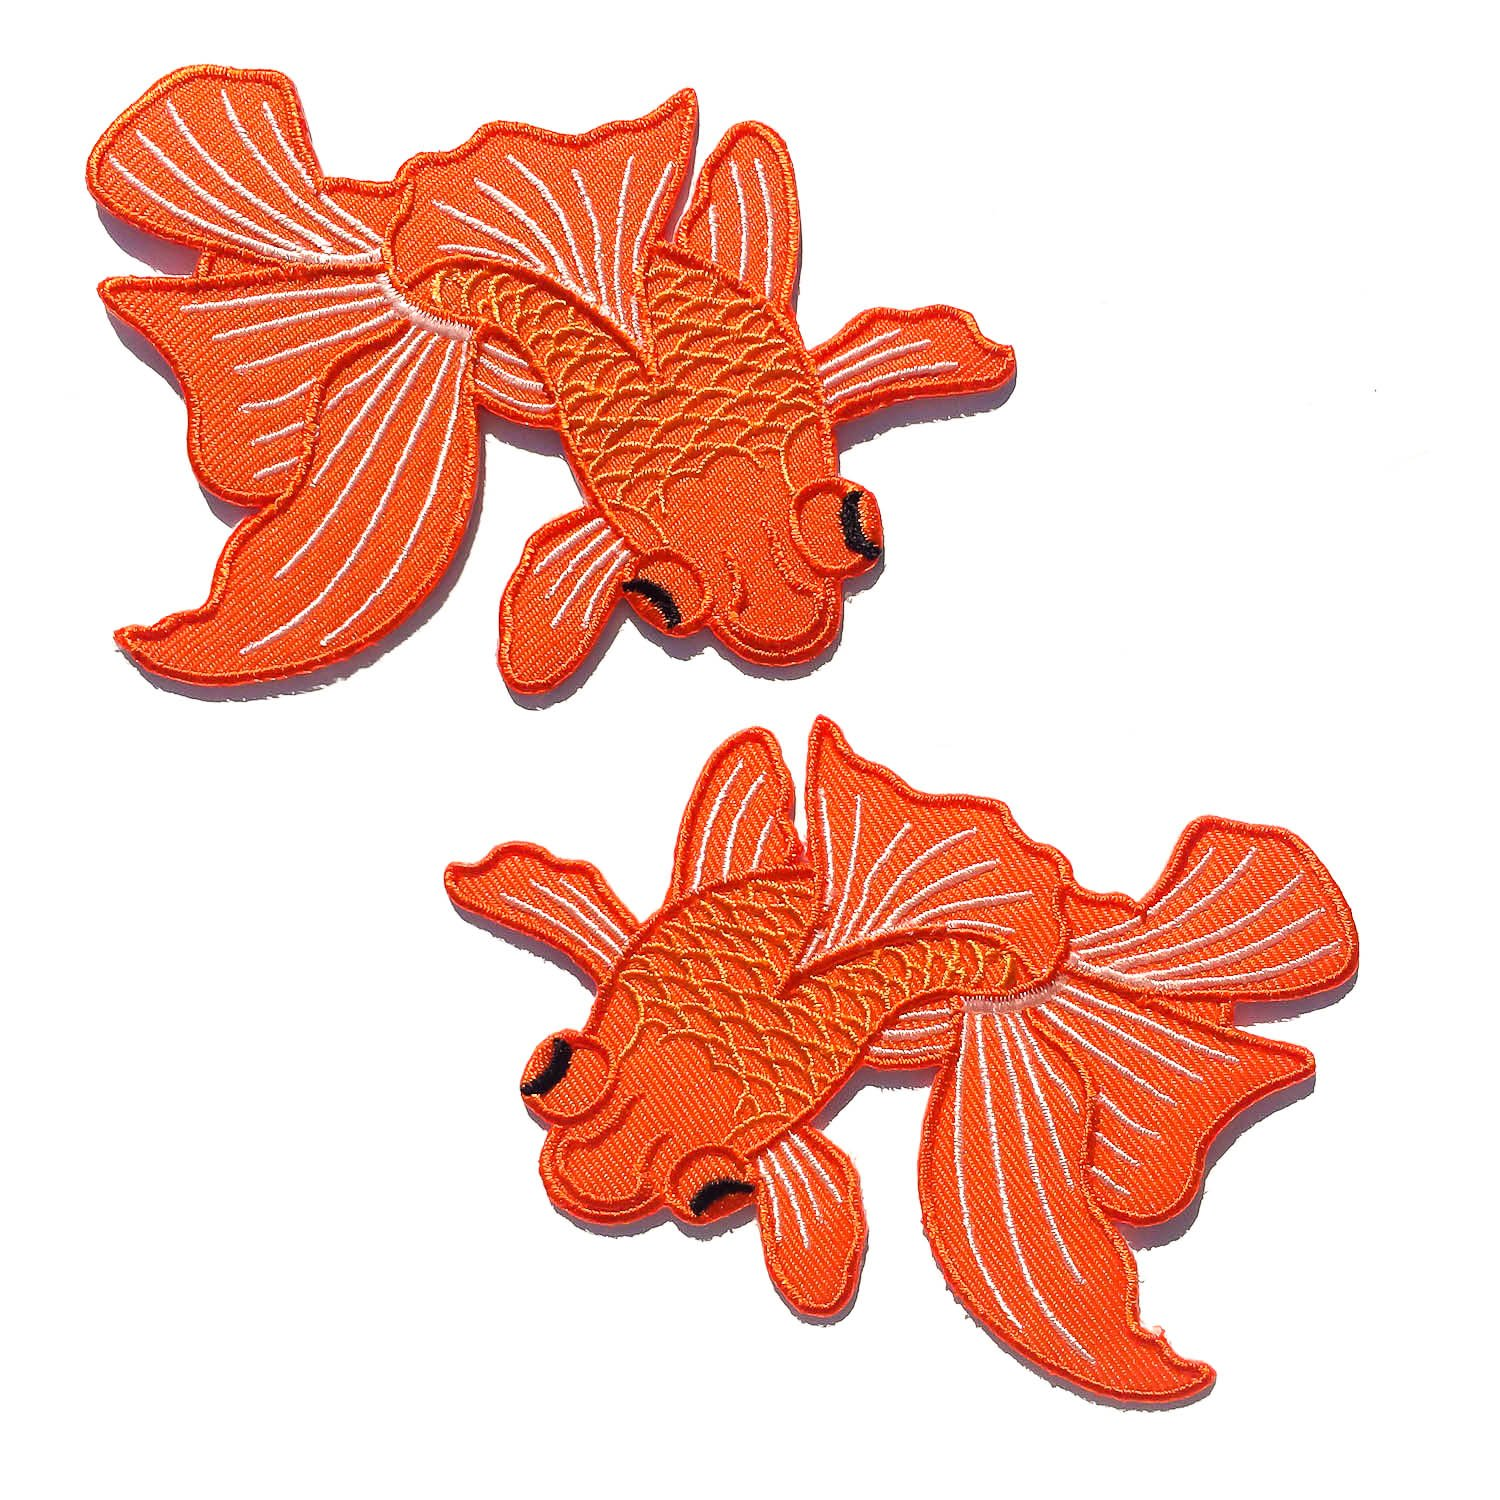 Japanese Koi Fish Patches - Set of 2 iron-on patches - Left and Right - Orange - Size 3x4 (Gift Ready Packaging!) 639790998183 4337021484